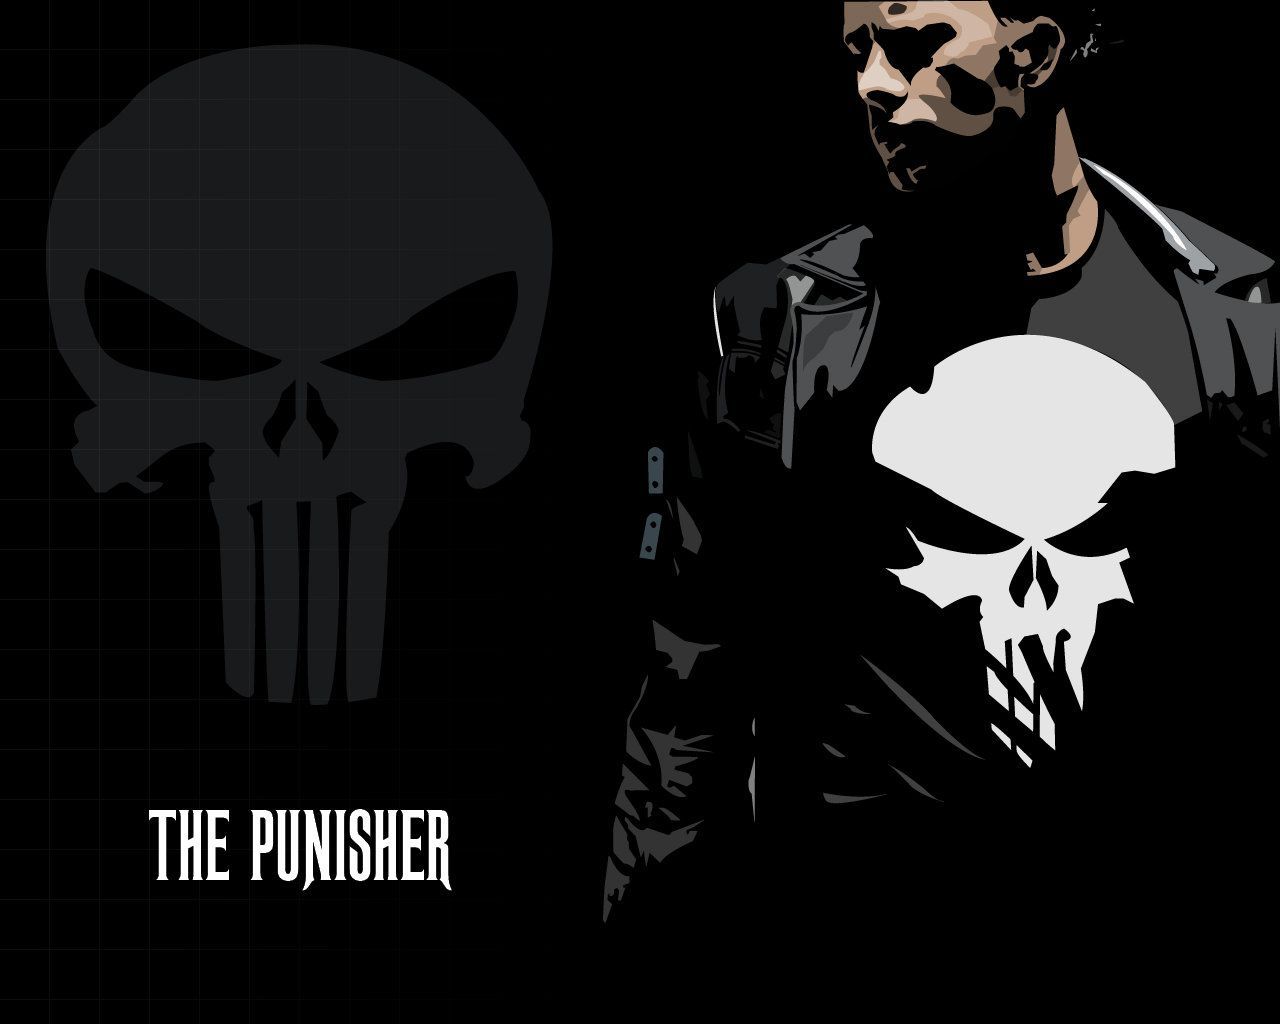 Punisher Wallpapers Top Free Punisher Backgrounds Wallpaperaccess